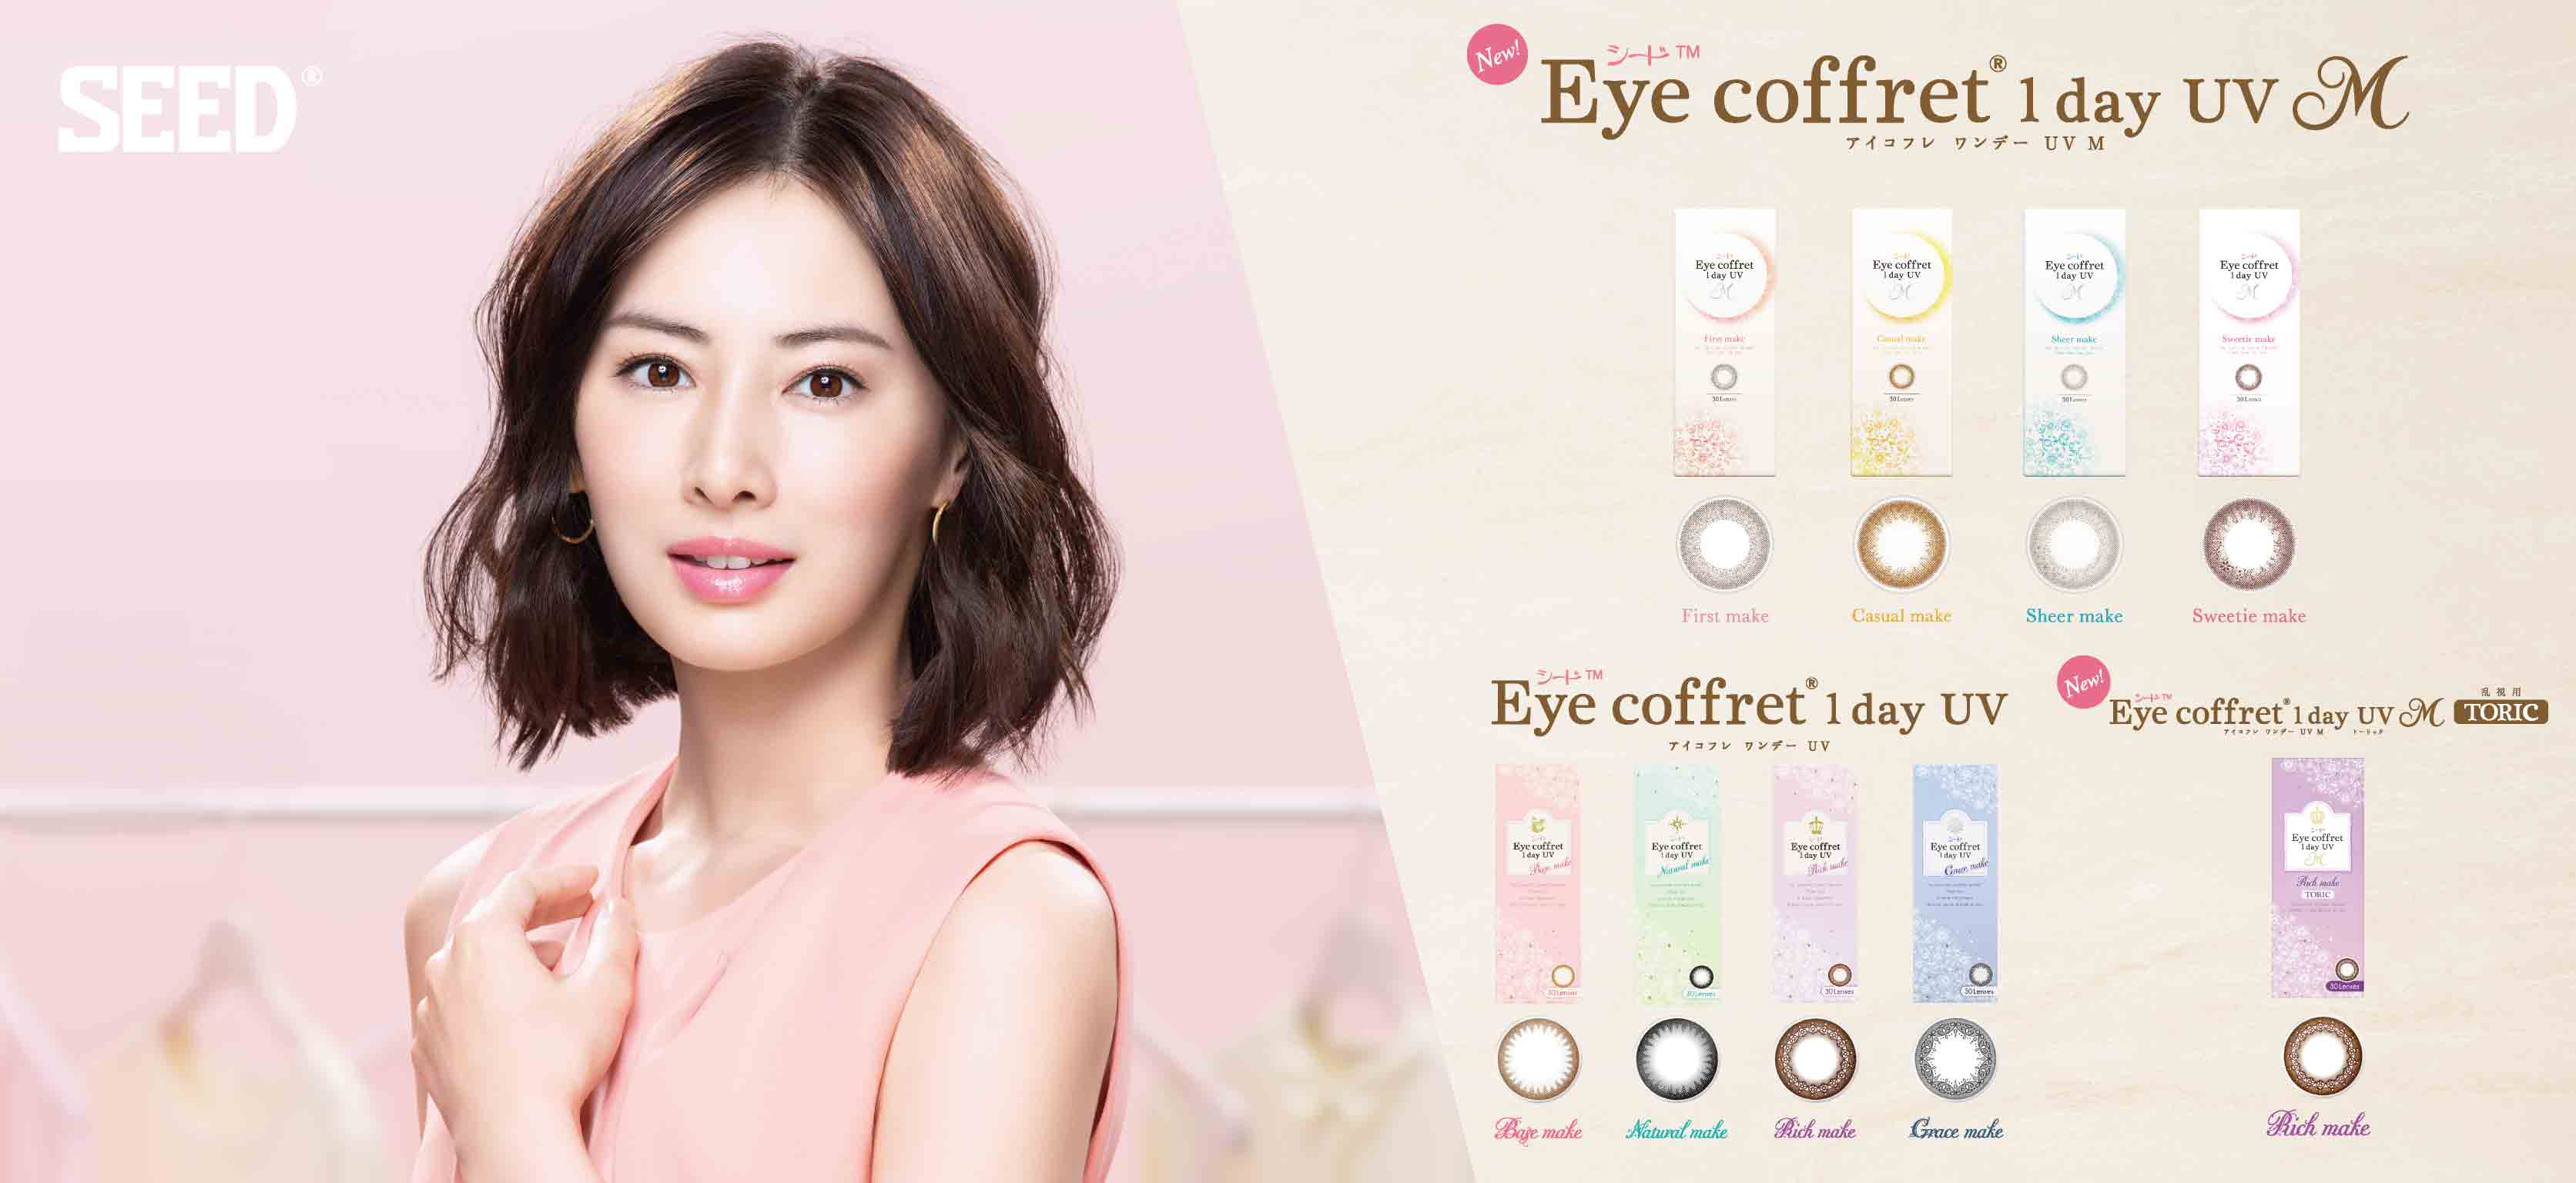 00_EyeCoffret-color-hp-banner-1-with-new-logo_30p_small